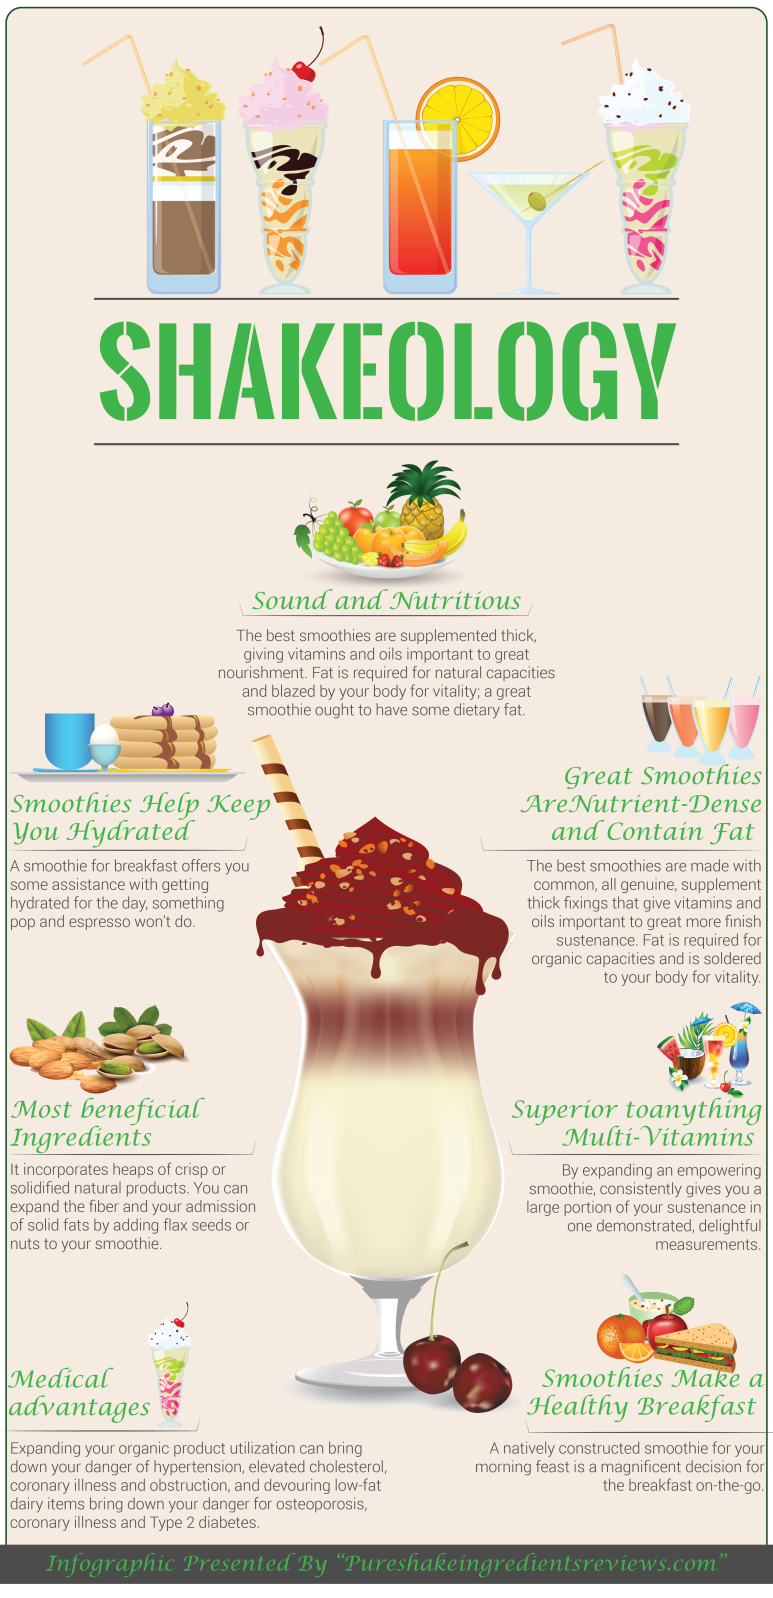 Infographic by pureshakeingredientsreviews.com